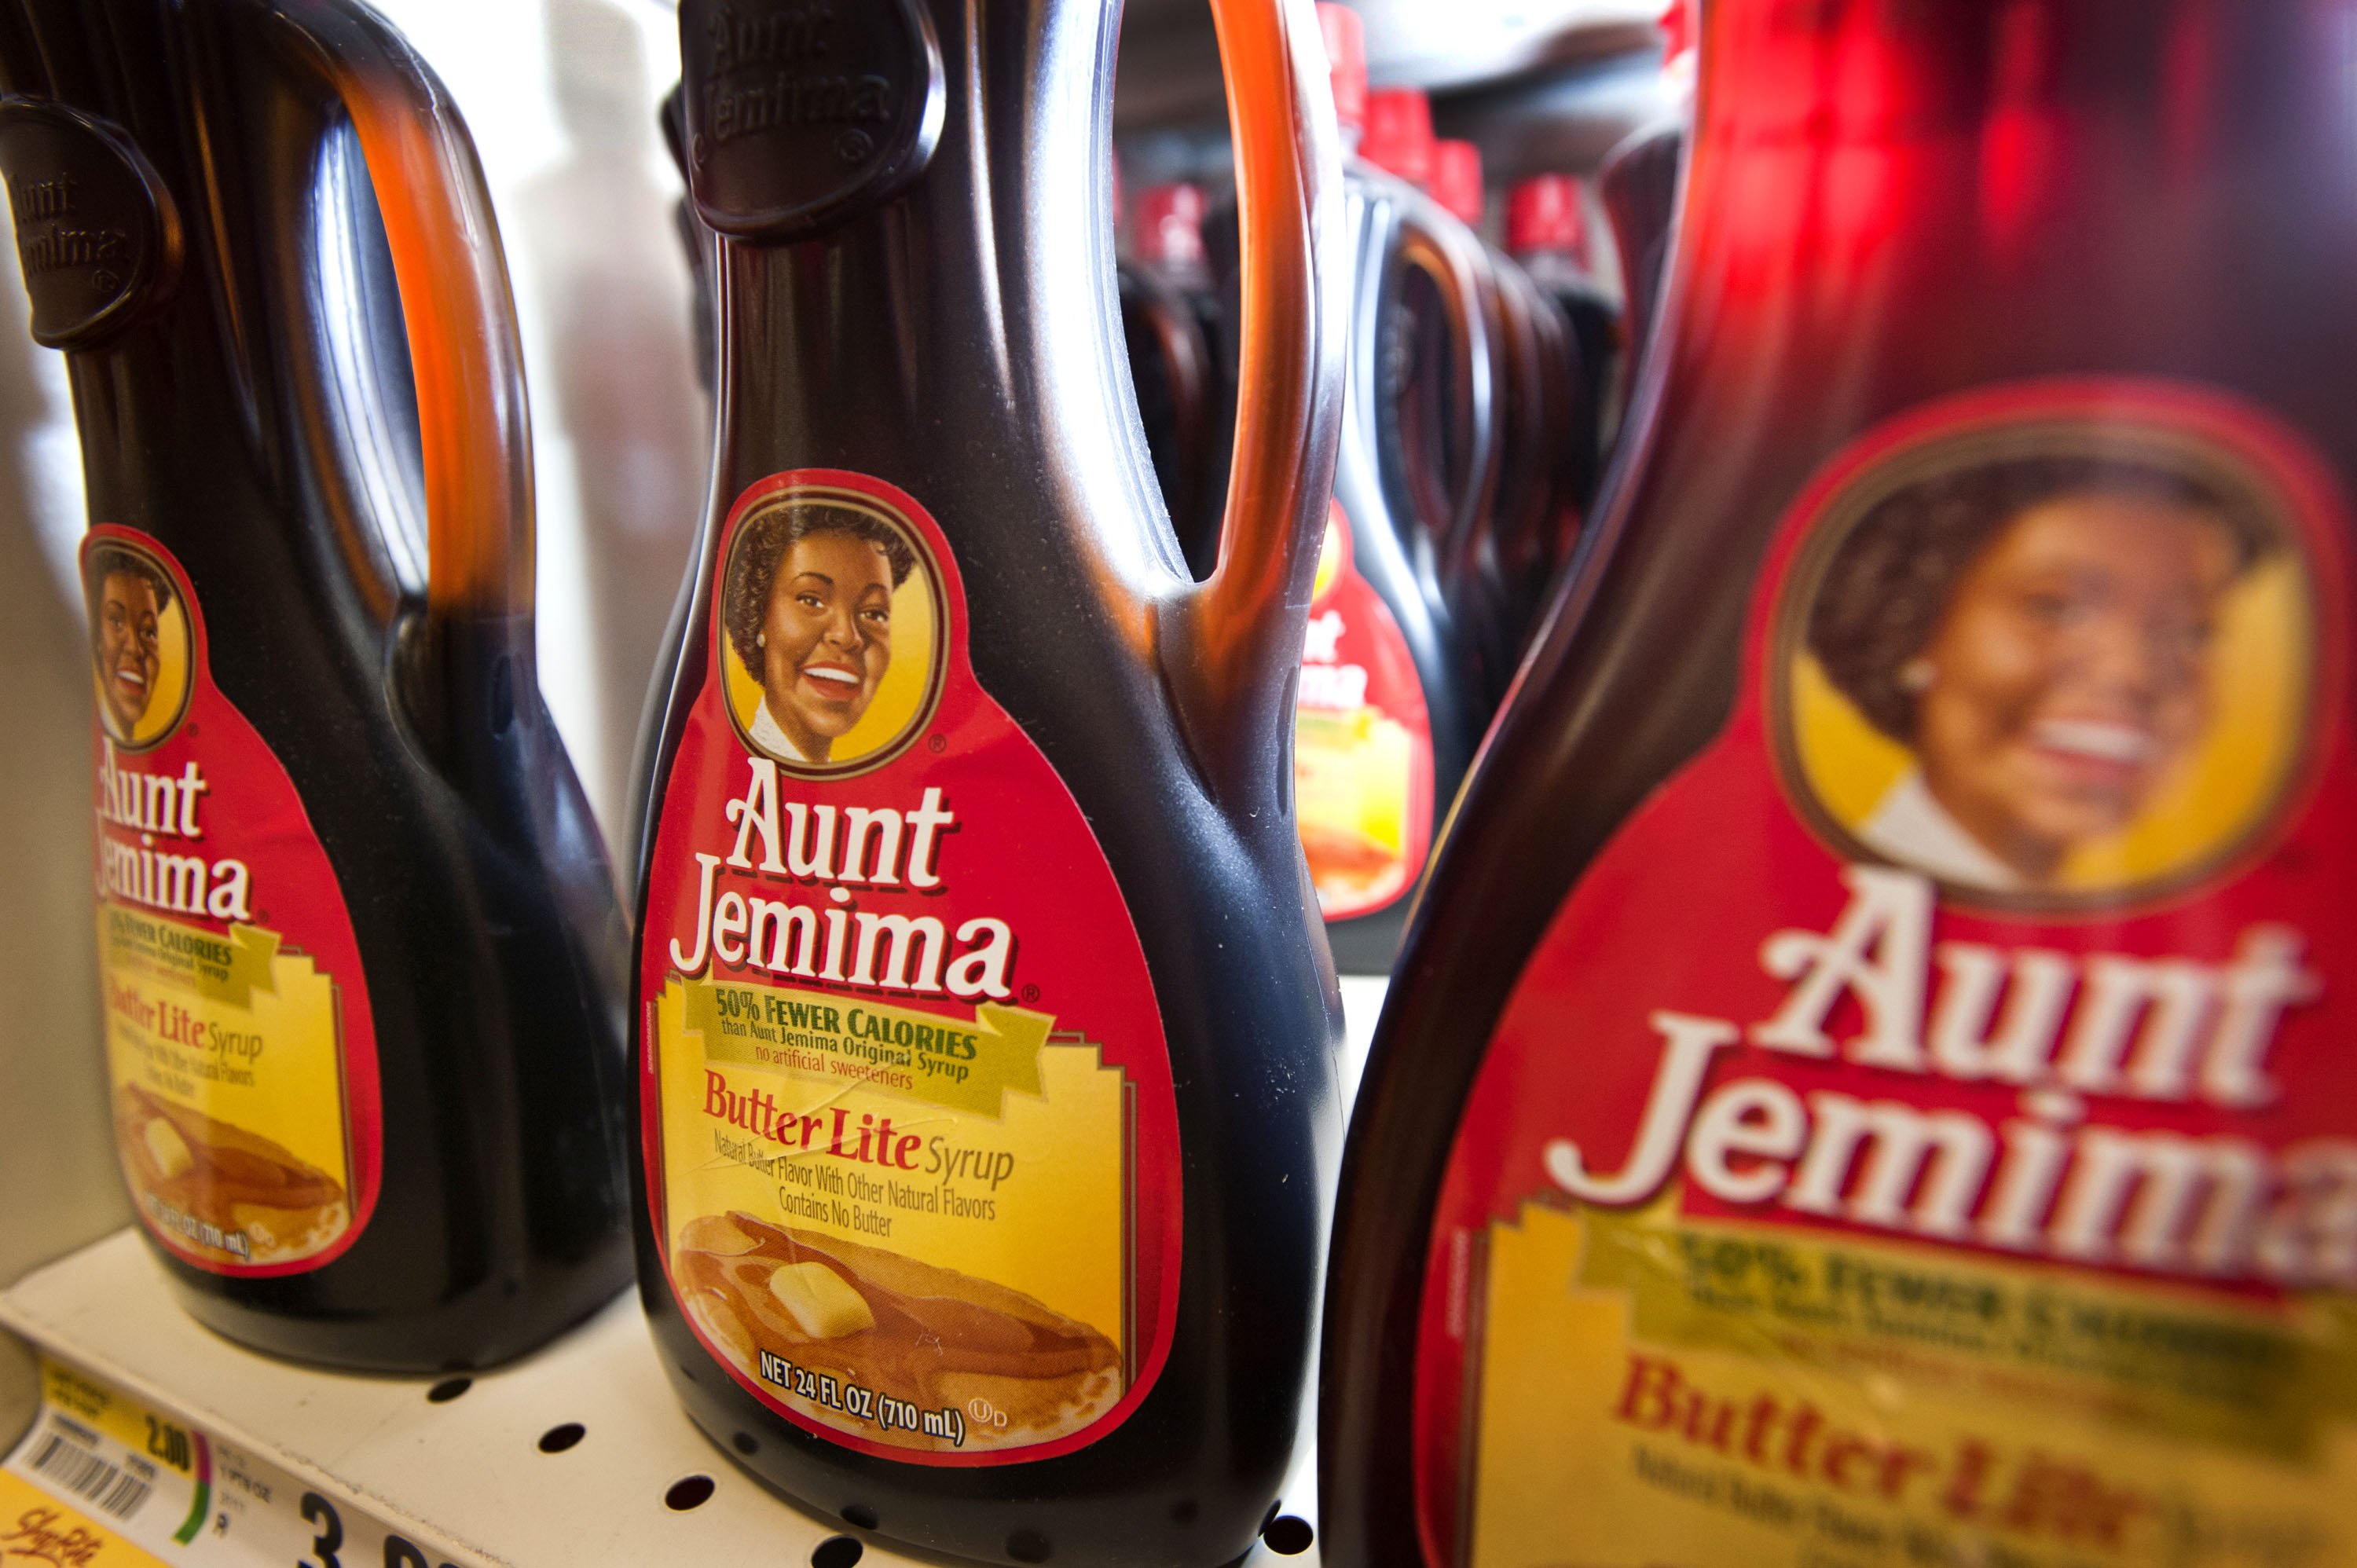 Bottles of Aunt Jemima syrup are displayed for sale at a  grocery store in Connecticut in Aug. 2011.